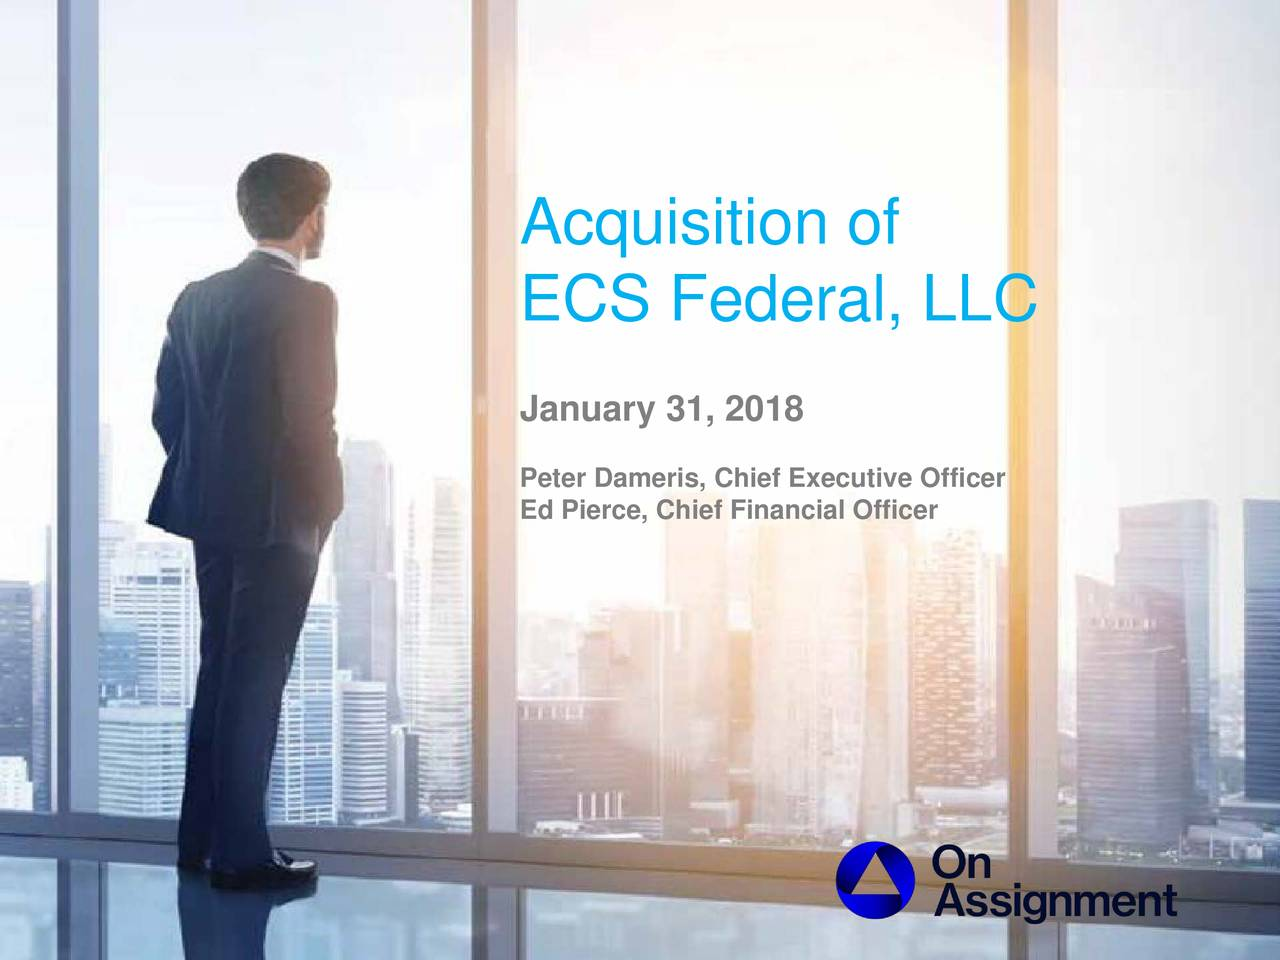 ecs federal llc january 31 2018 peter dameris chief executive officer ed pierce